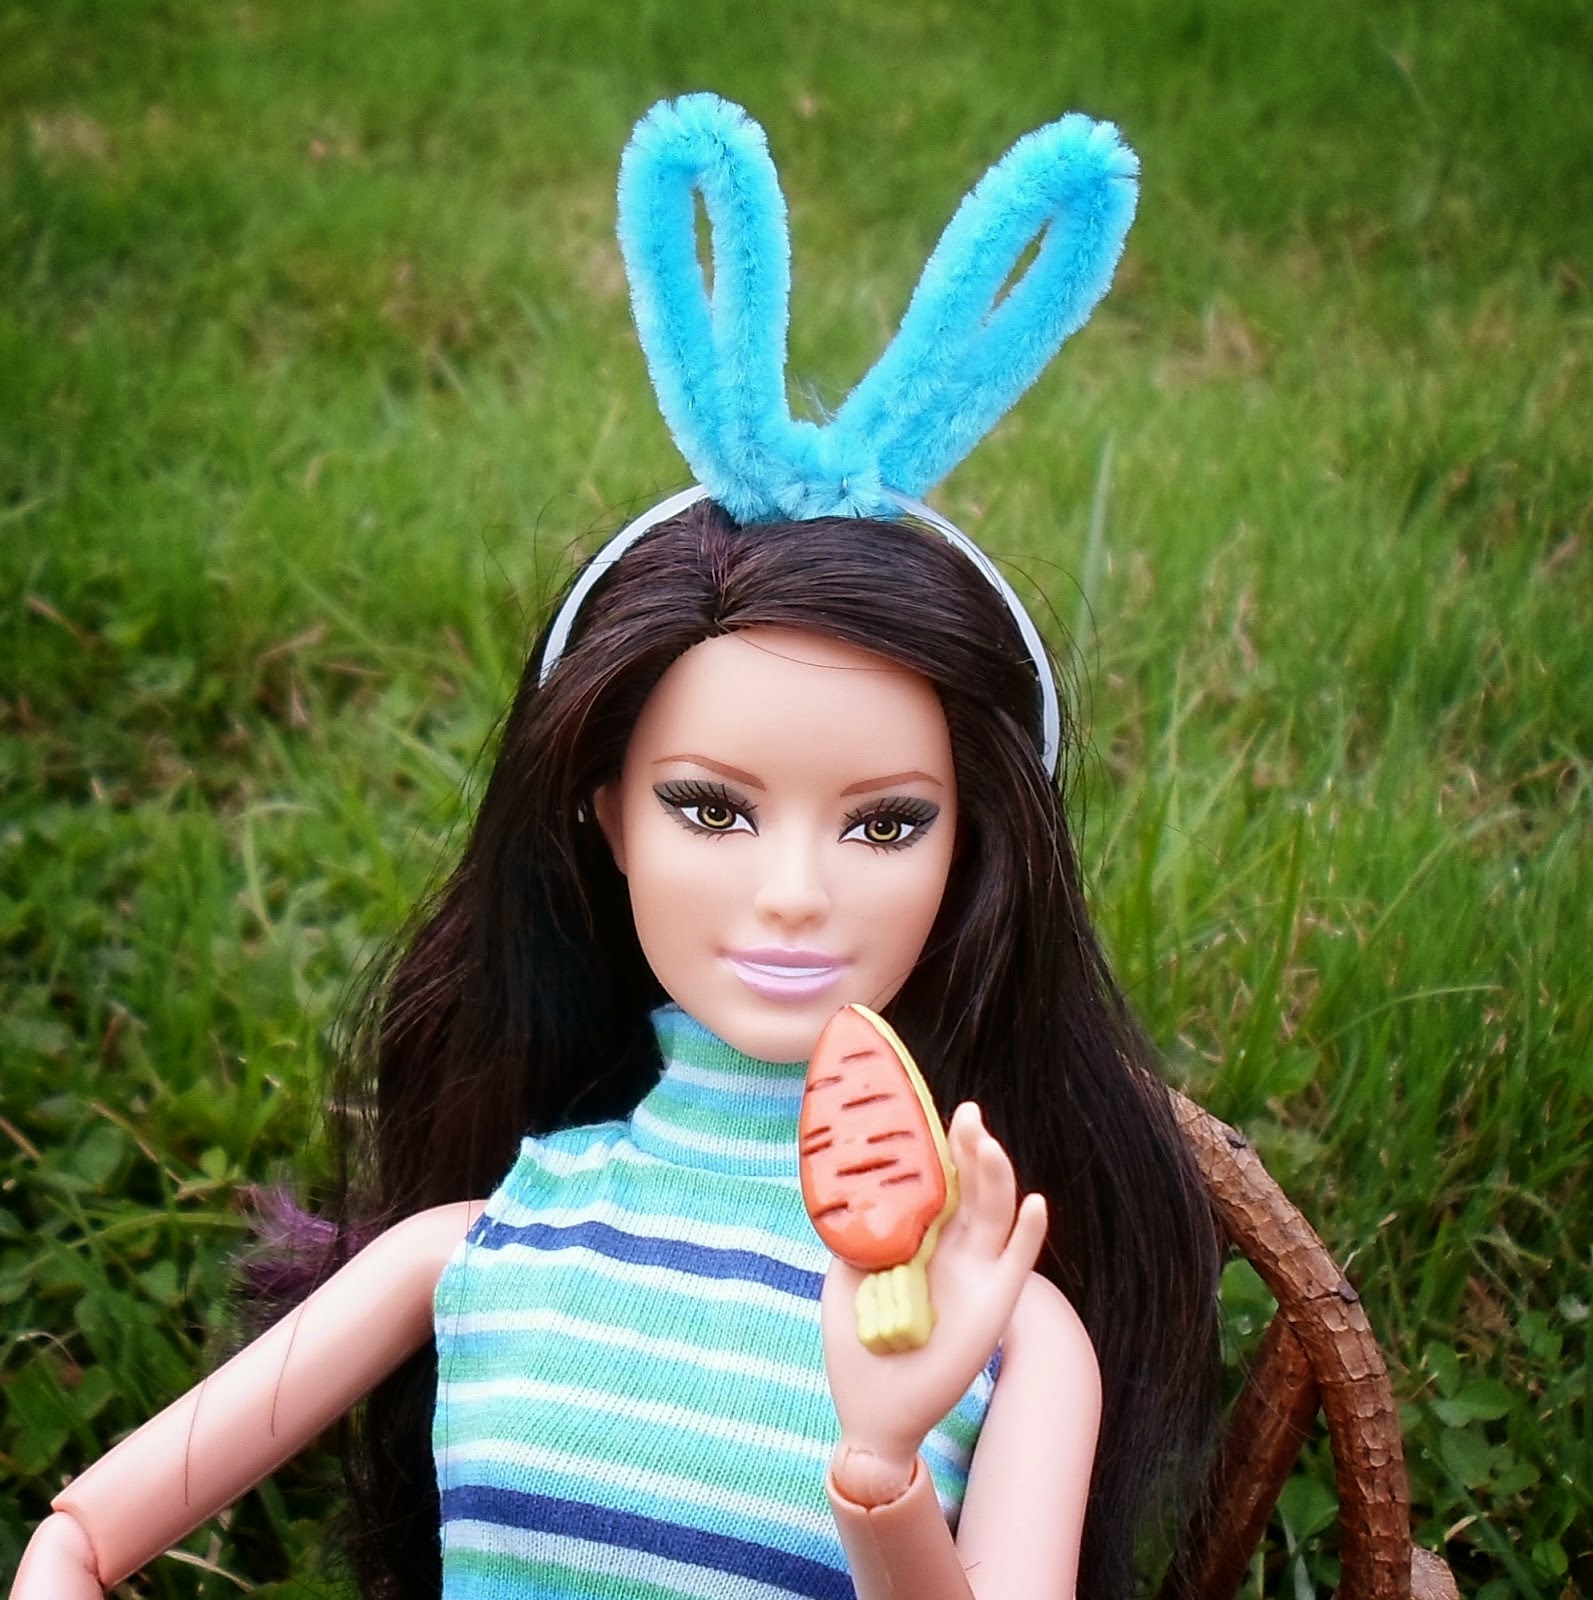 http://happierthanapiginmud.blogspot.com/2014/04/last-minute-bunny-ears-for-barbie.html